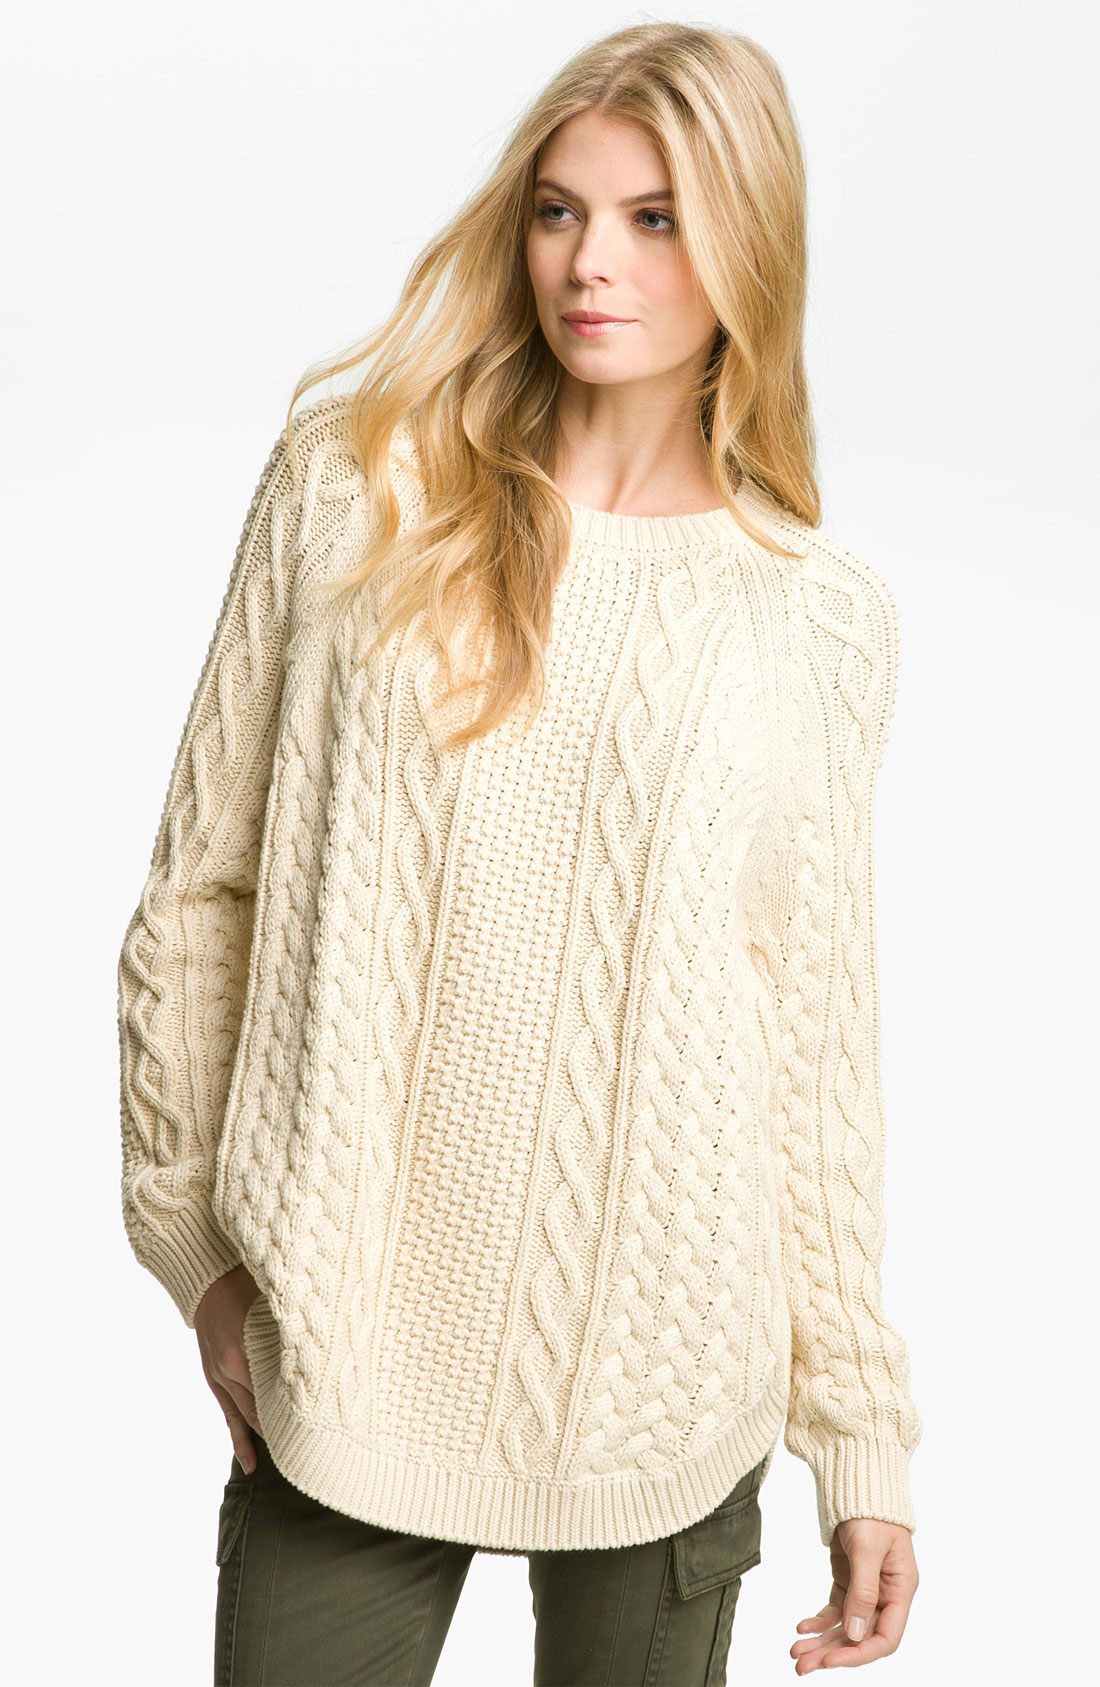 Michael michael kors Fisherman Cable Knit Sweater in Natural | Lyst